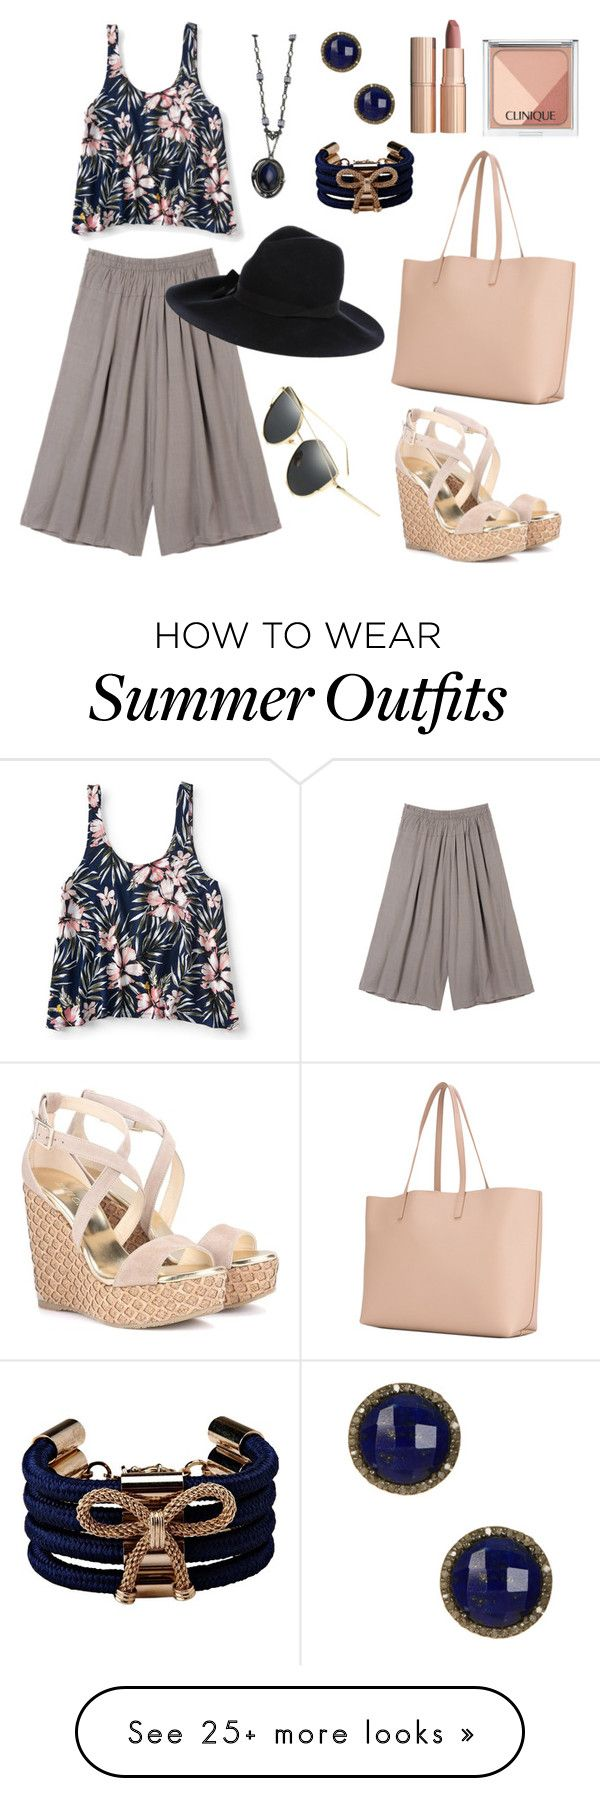 """""""casual summer outfit"""" by noviandri-ronal on Polyvore featuring Aéropostale, Jimmy Choo, Yves Saint Laurent, 1928, RED Valentino, ADORNIA, ..,MERCI, Charlotte Tilbury and Clinique"""